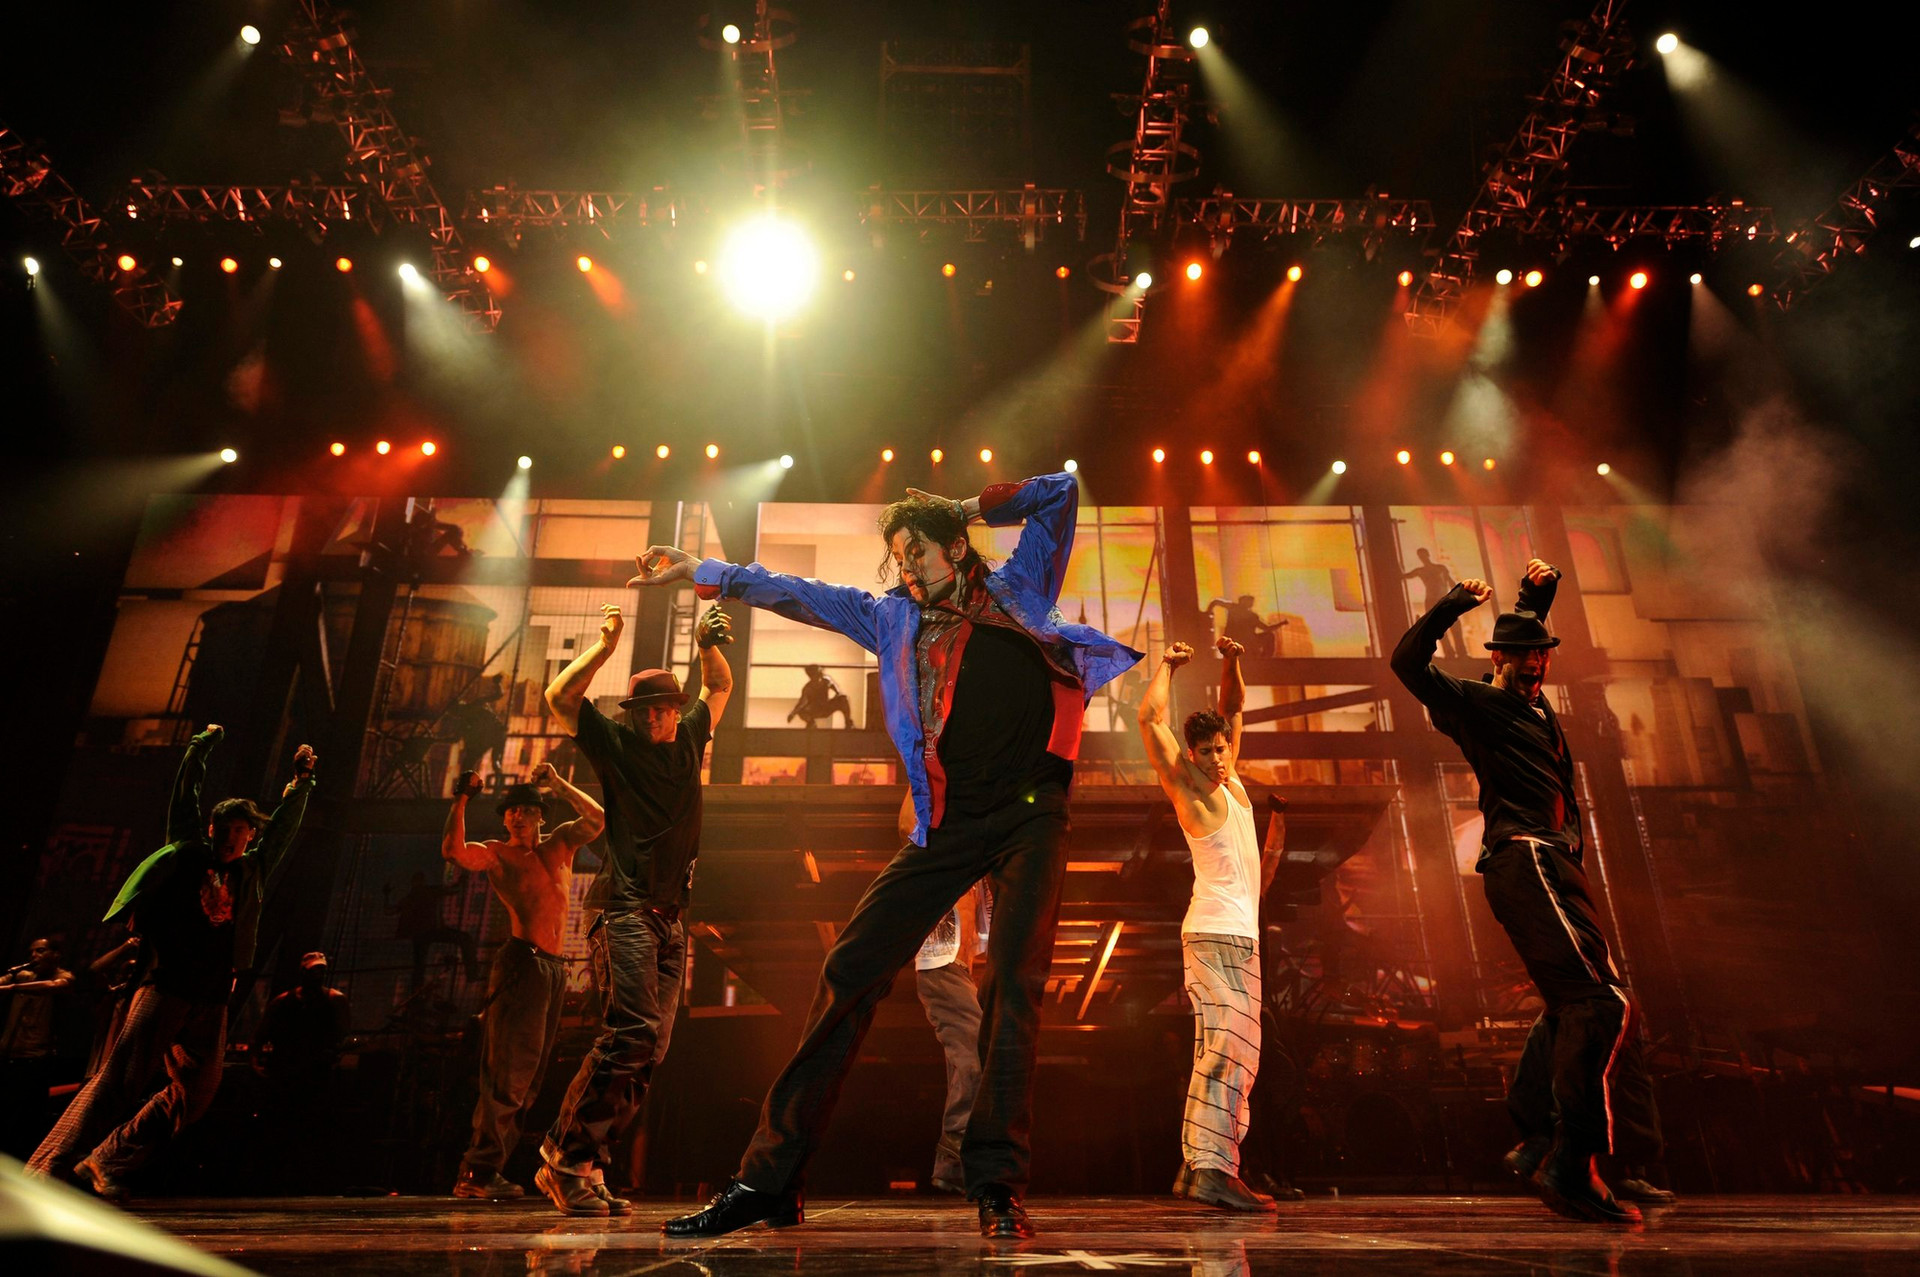 MICHAEL JACKSON - THIS IS IT - 2009